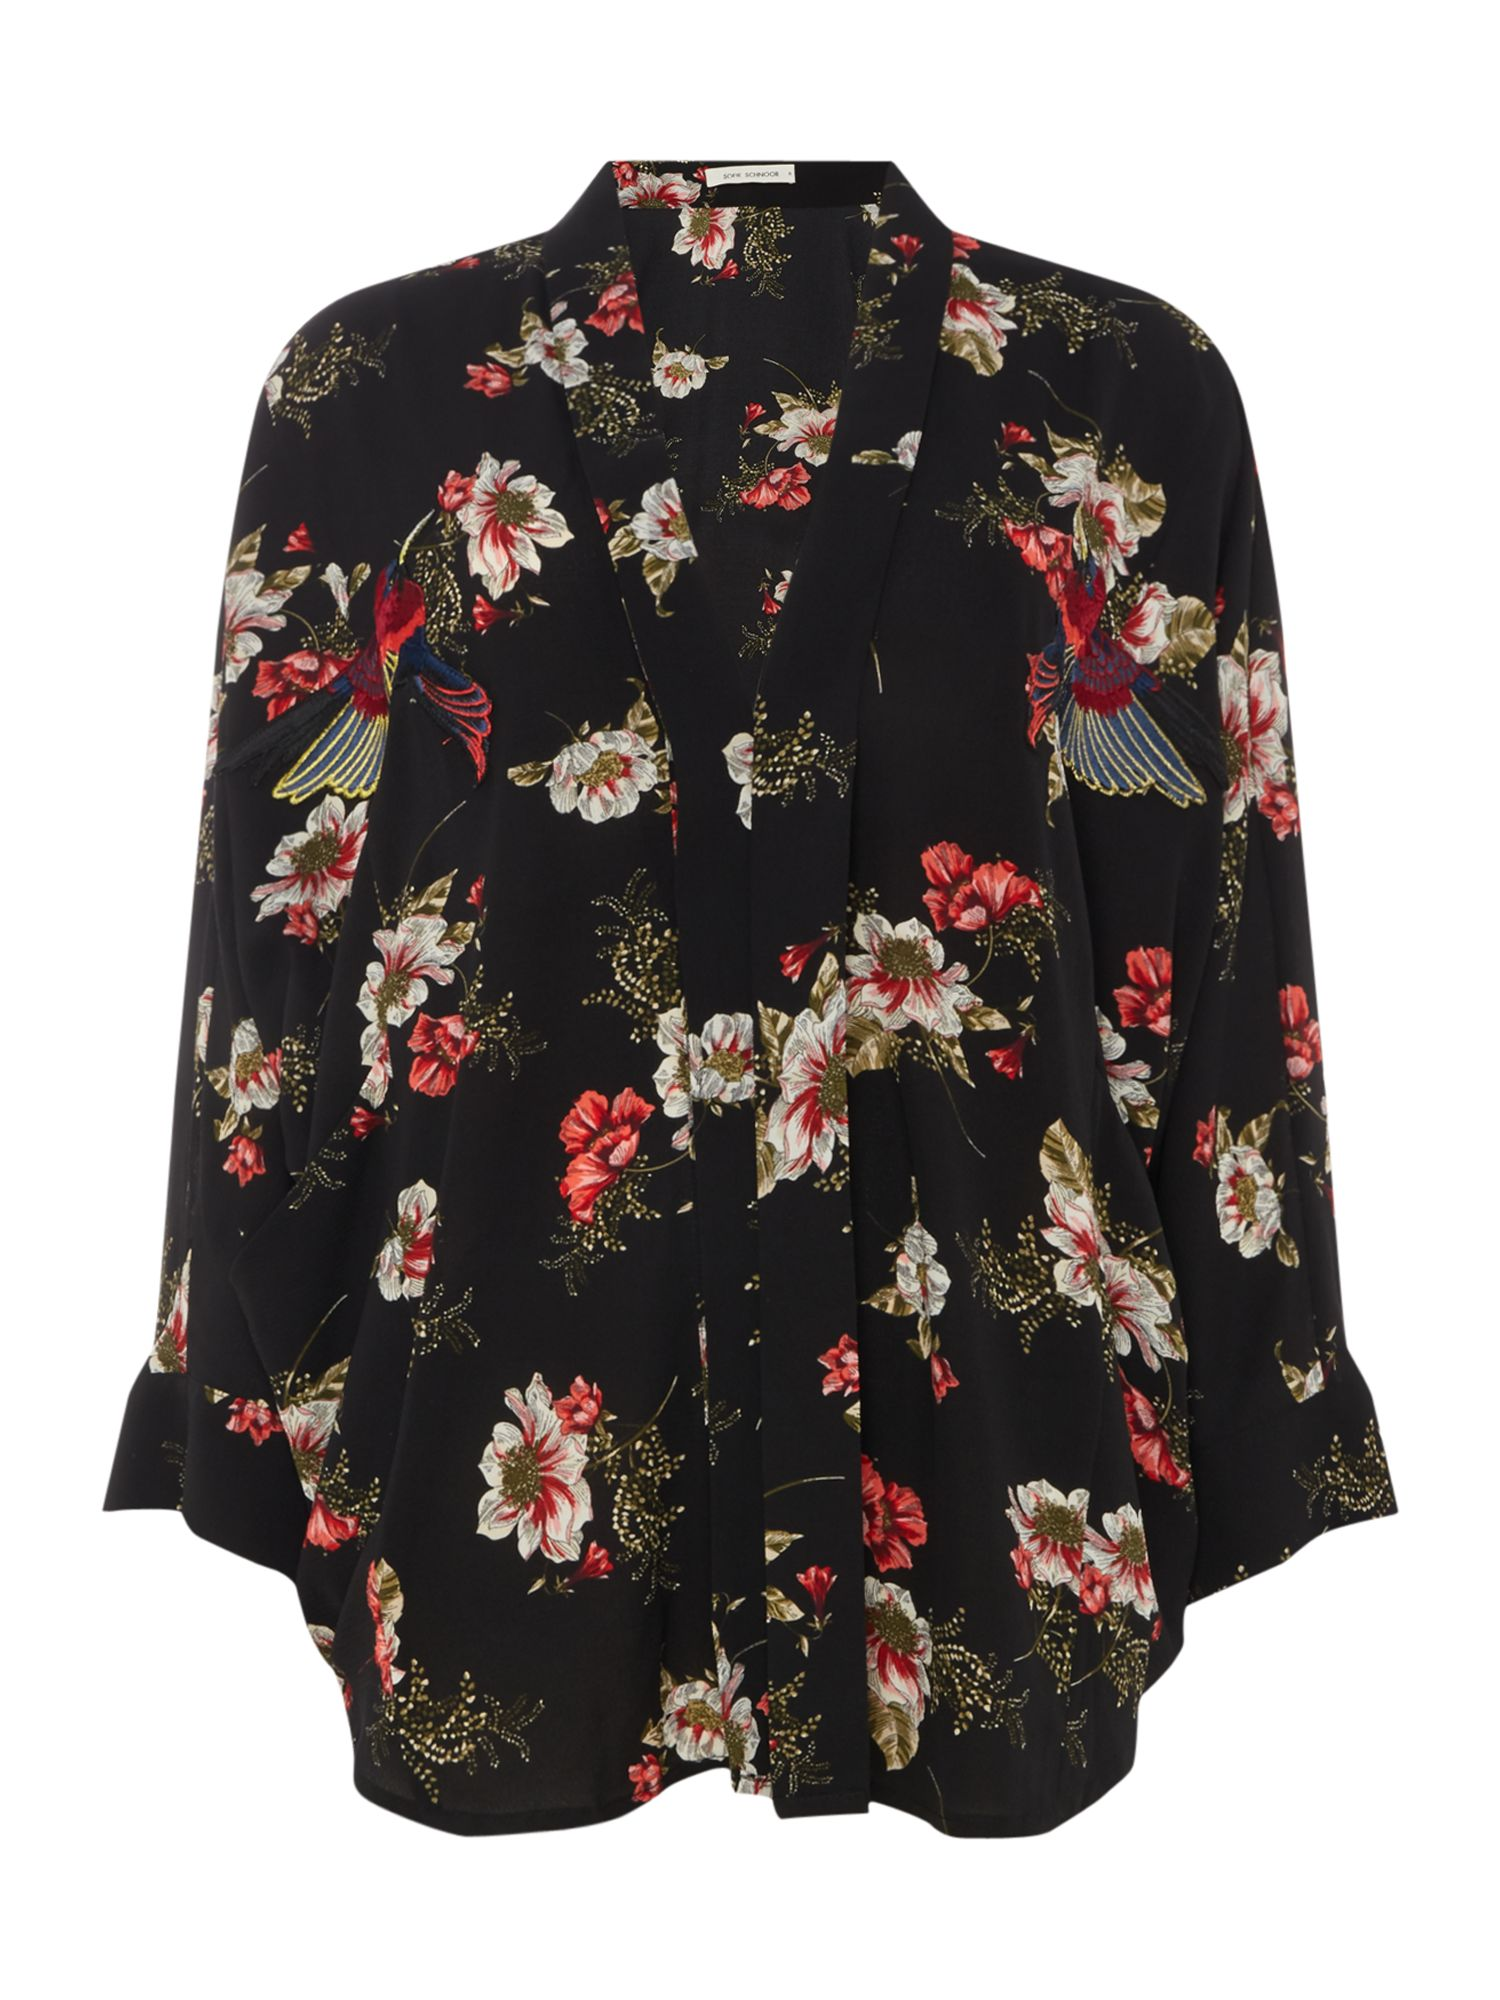 Sofie Schnoor Floral print kimono with embroidery detail, Black